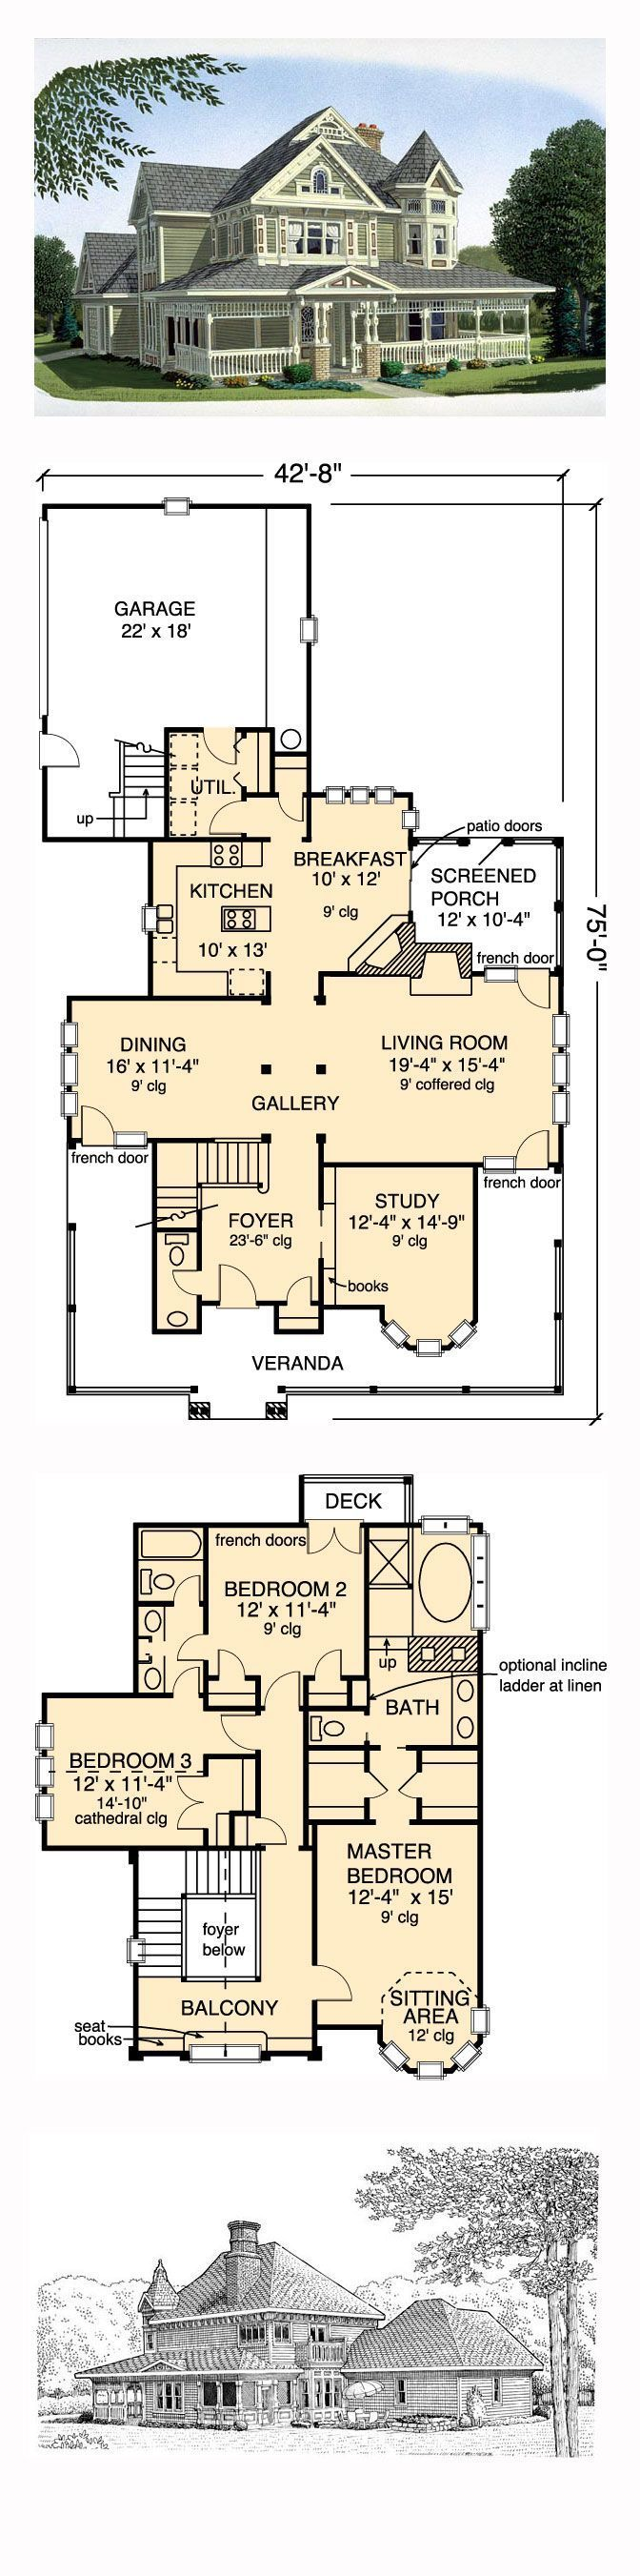 Victorian House Plan 95540  Total Living Area 2312 sq ft 3 bedrooms and 25 Victorian House Plan 95540  Total Living Area 2312 sq ft 3 bedrooms and 25